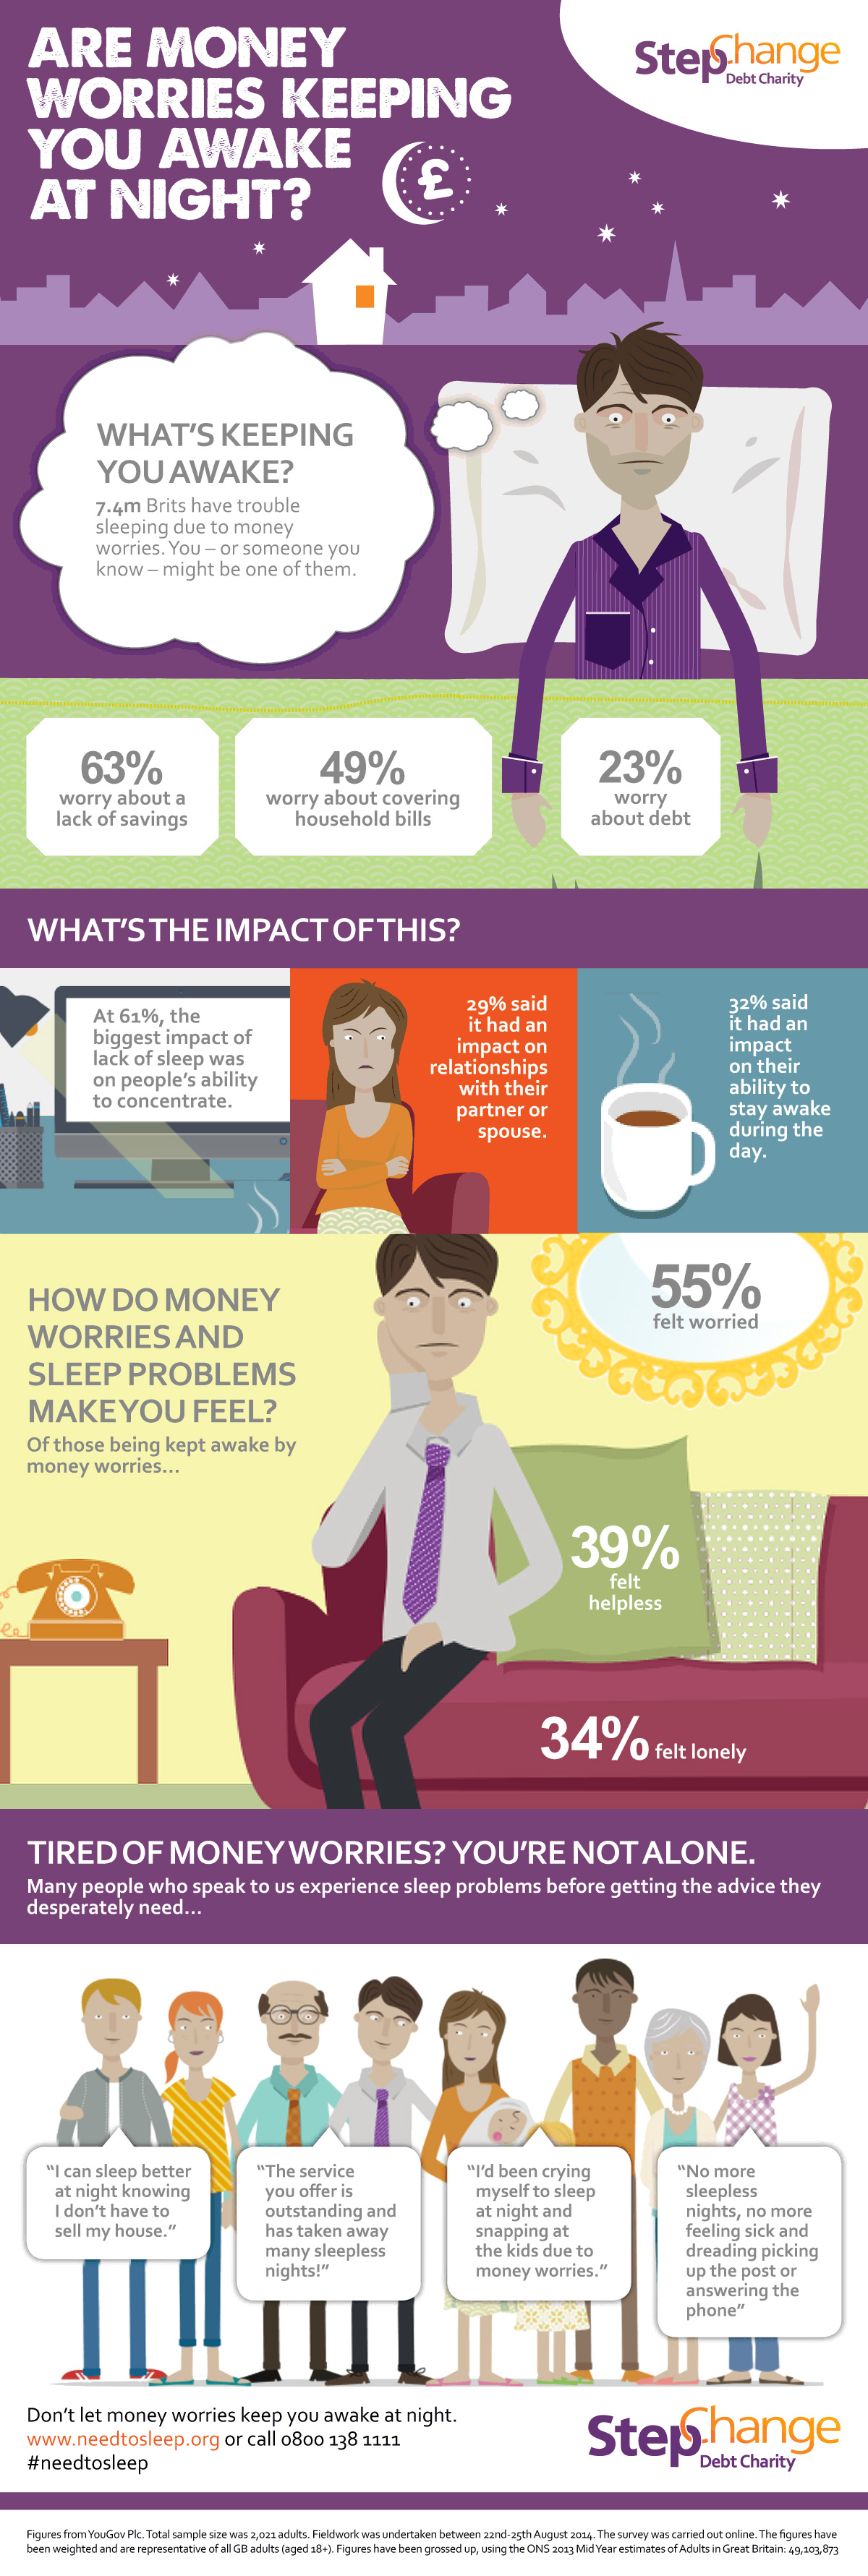 Are money worries keeping you awake at night?